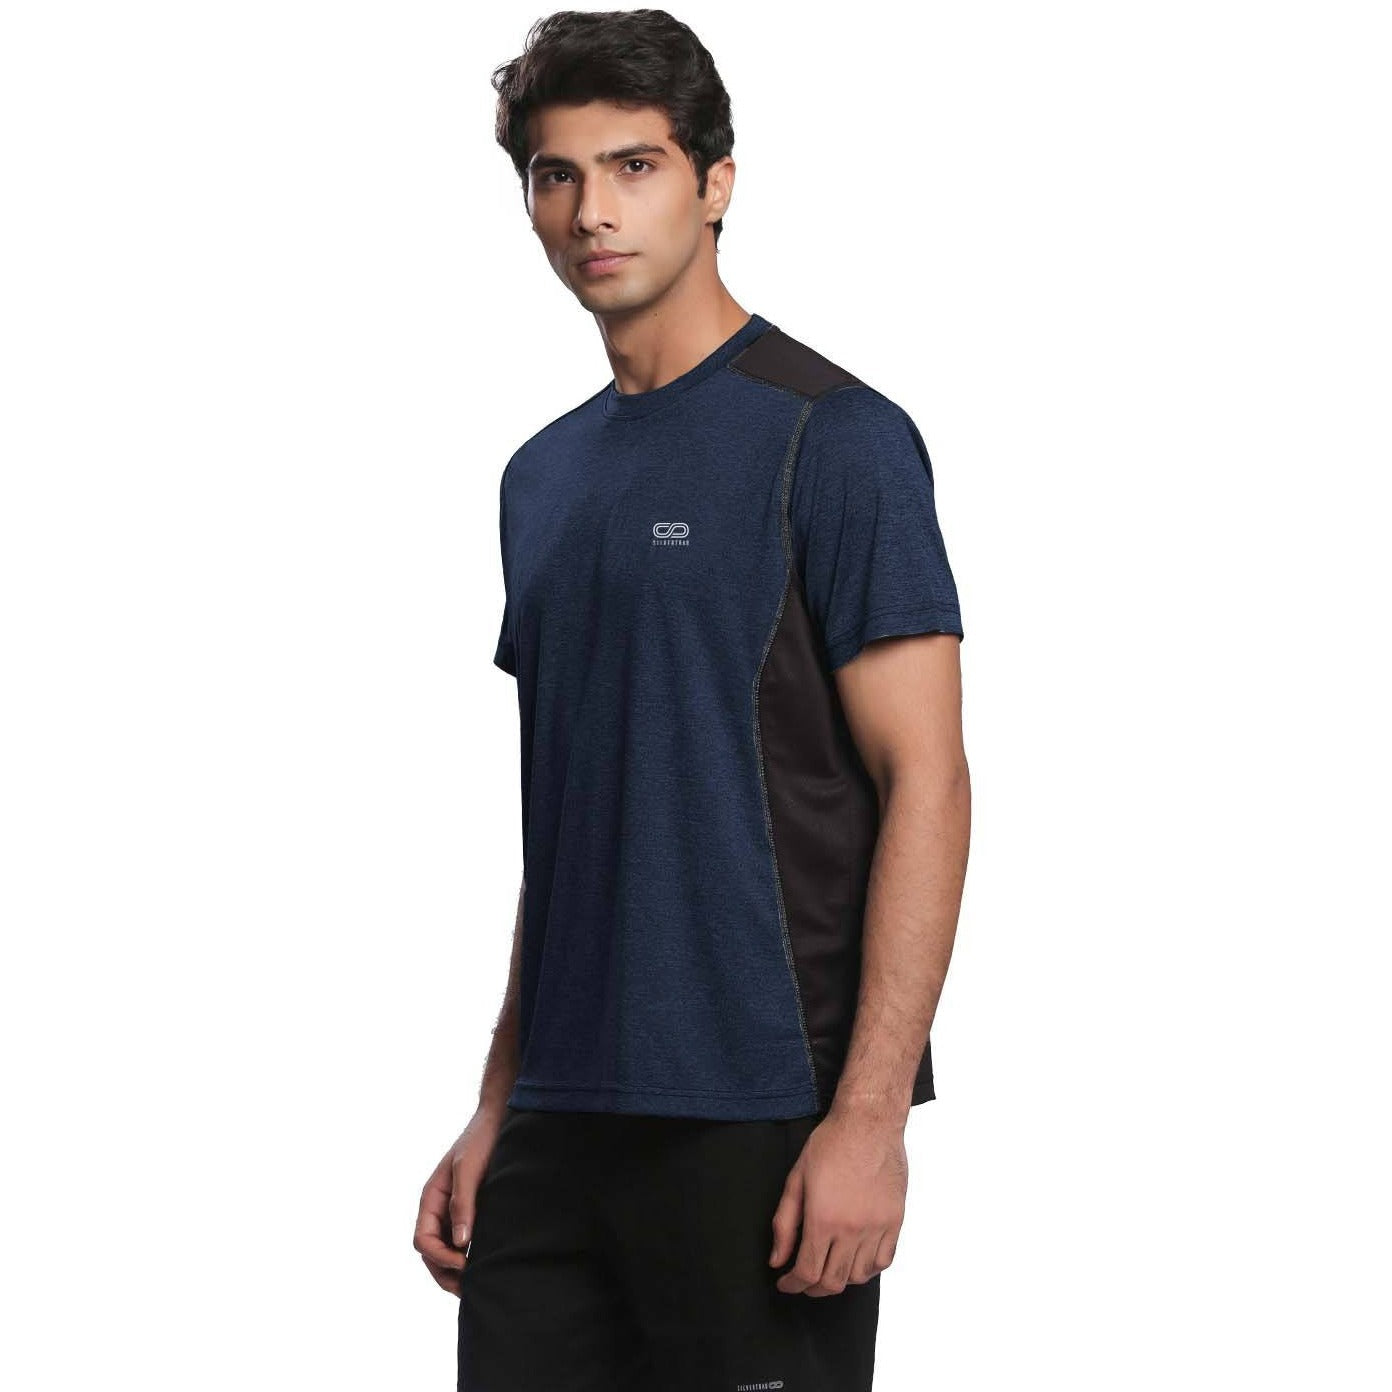 Men's Ventilated Melange T-Shirt